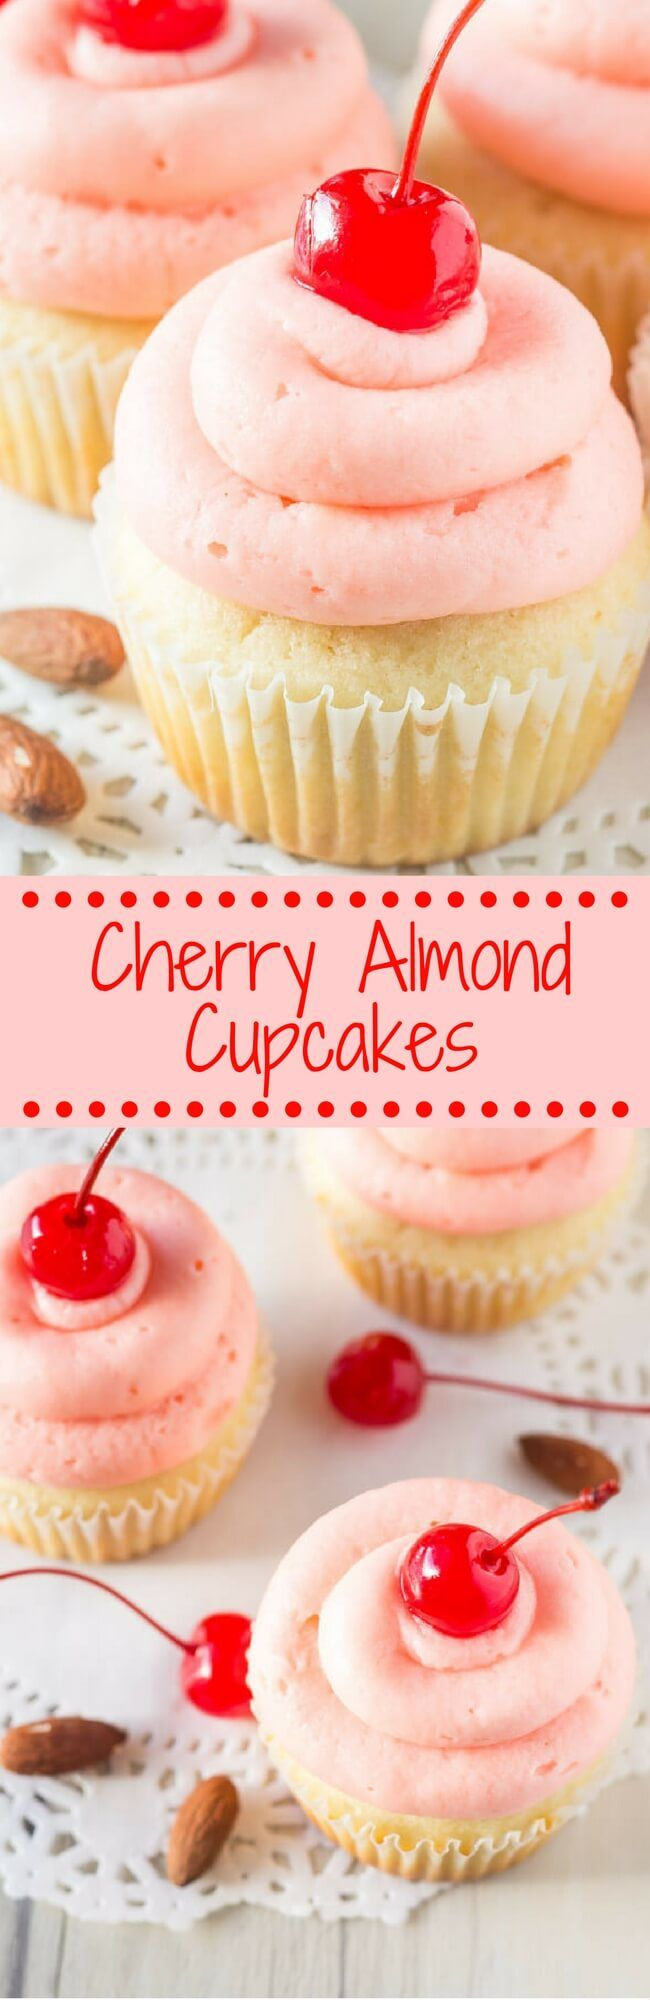 Cherry Almond Cupcakes start with fluffy, moist almond cupcakes. Then they're topped with maraschino cherry frosting for the prettiest cupcake. | Just So Tasty